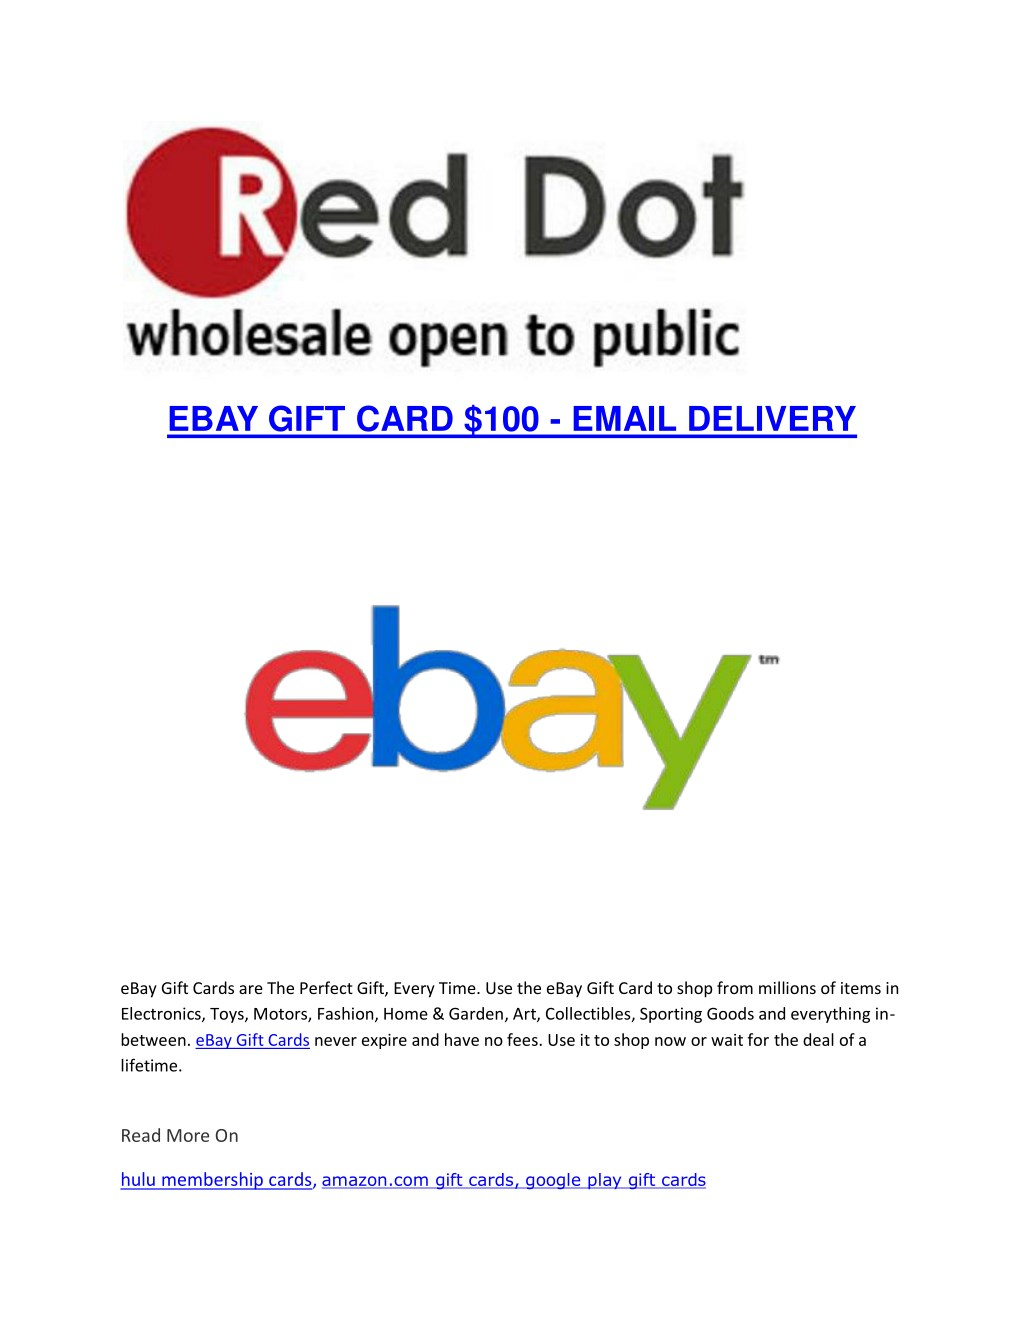 Ppt Ebay Gift Card 100 Email Delivery Powerpoint Presentation Free Download Id 7647652